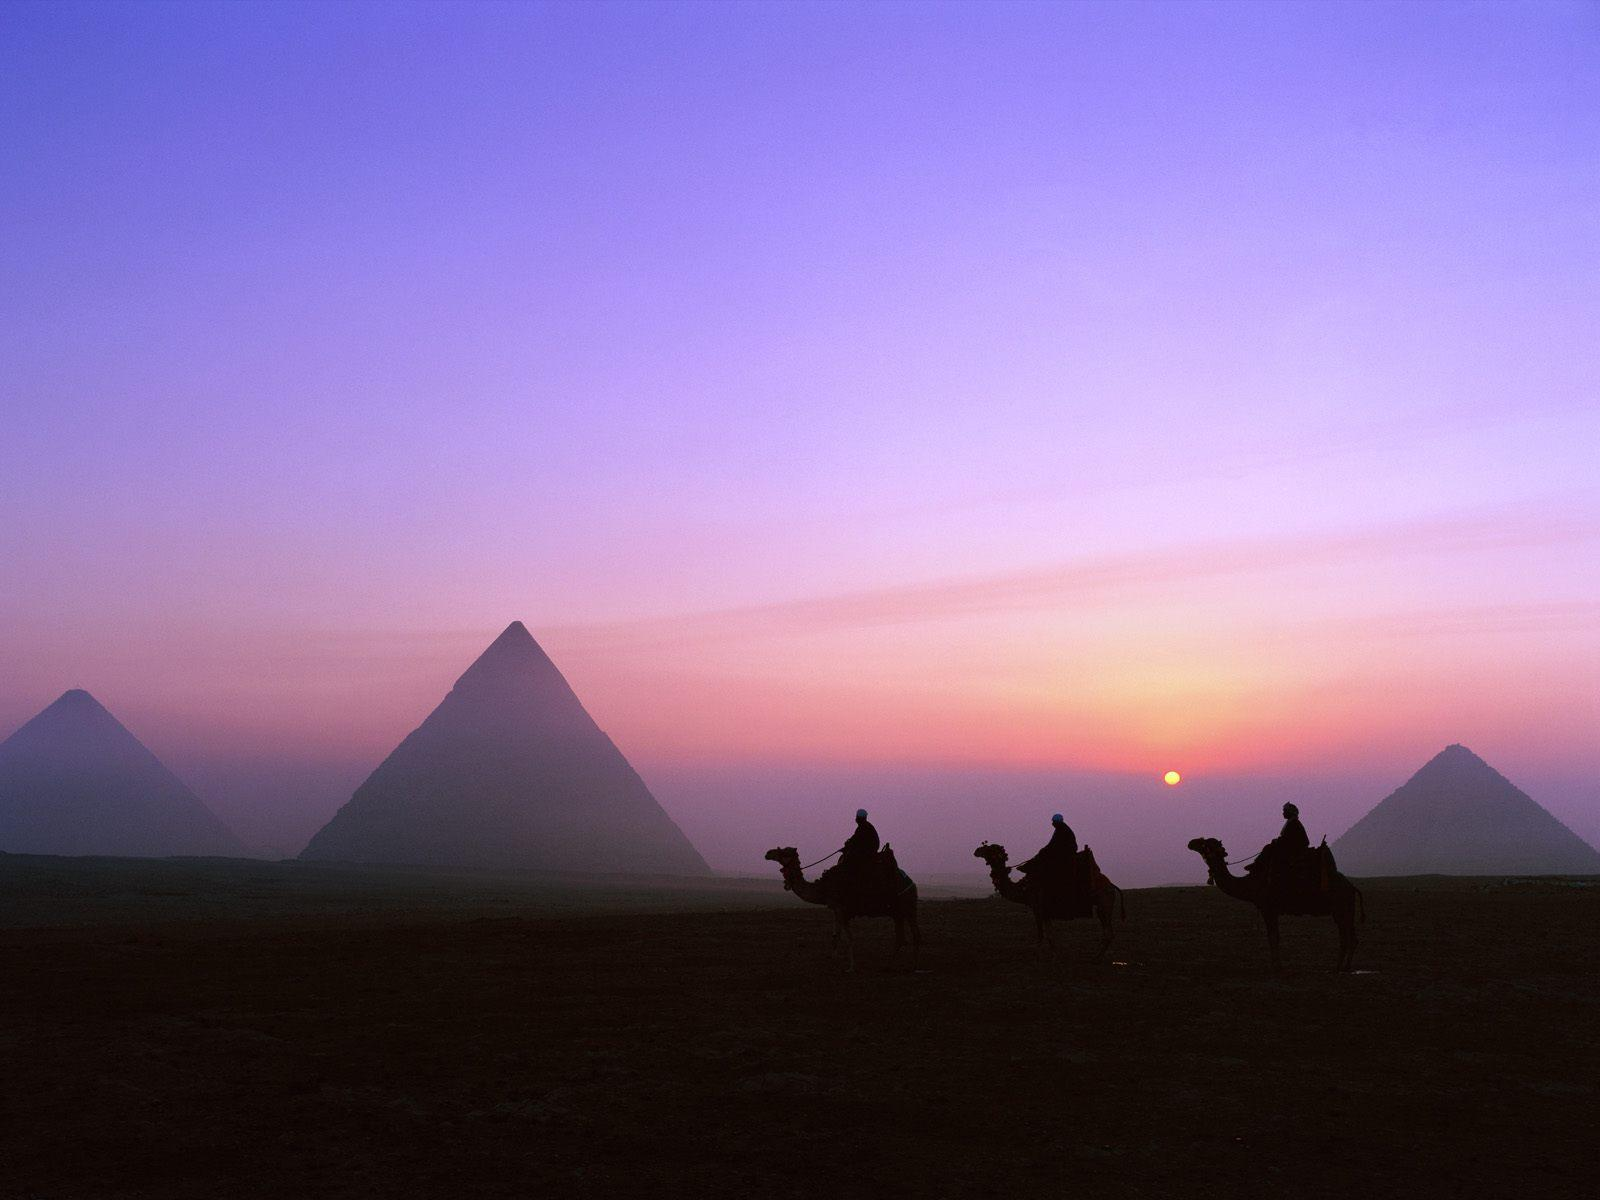 egypt desktop wallpaper - photo #13